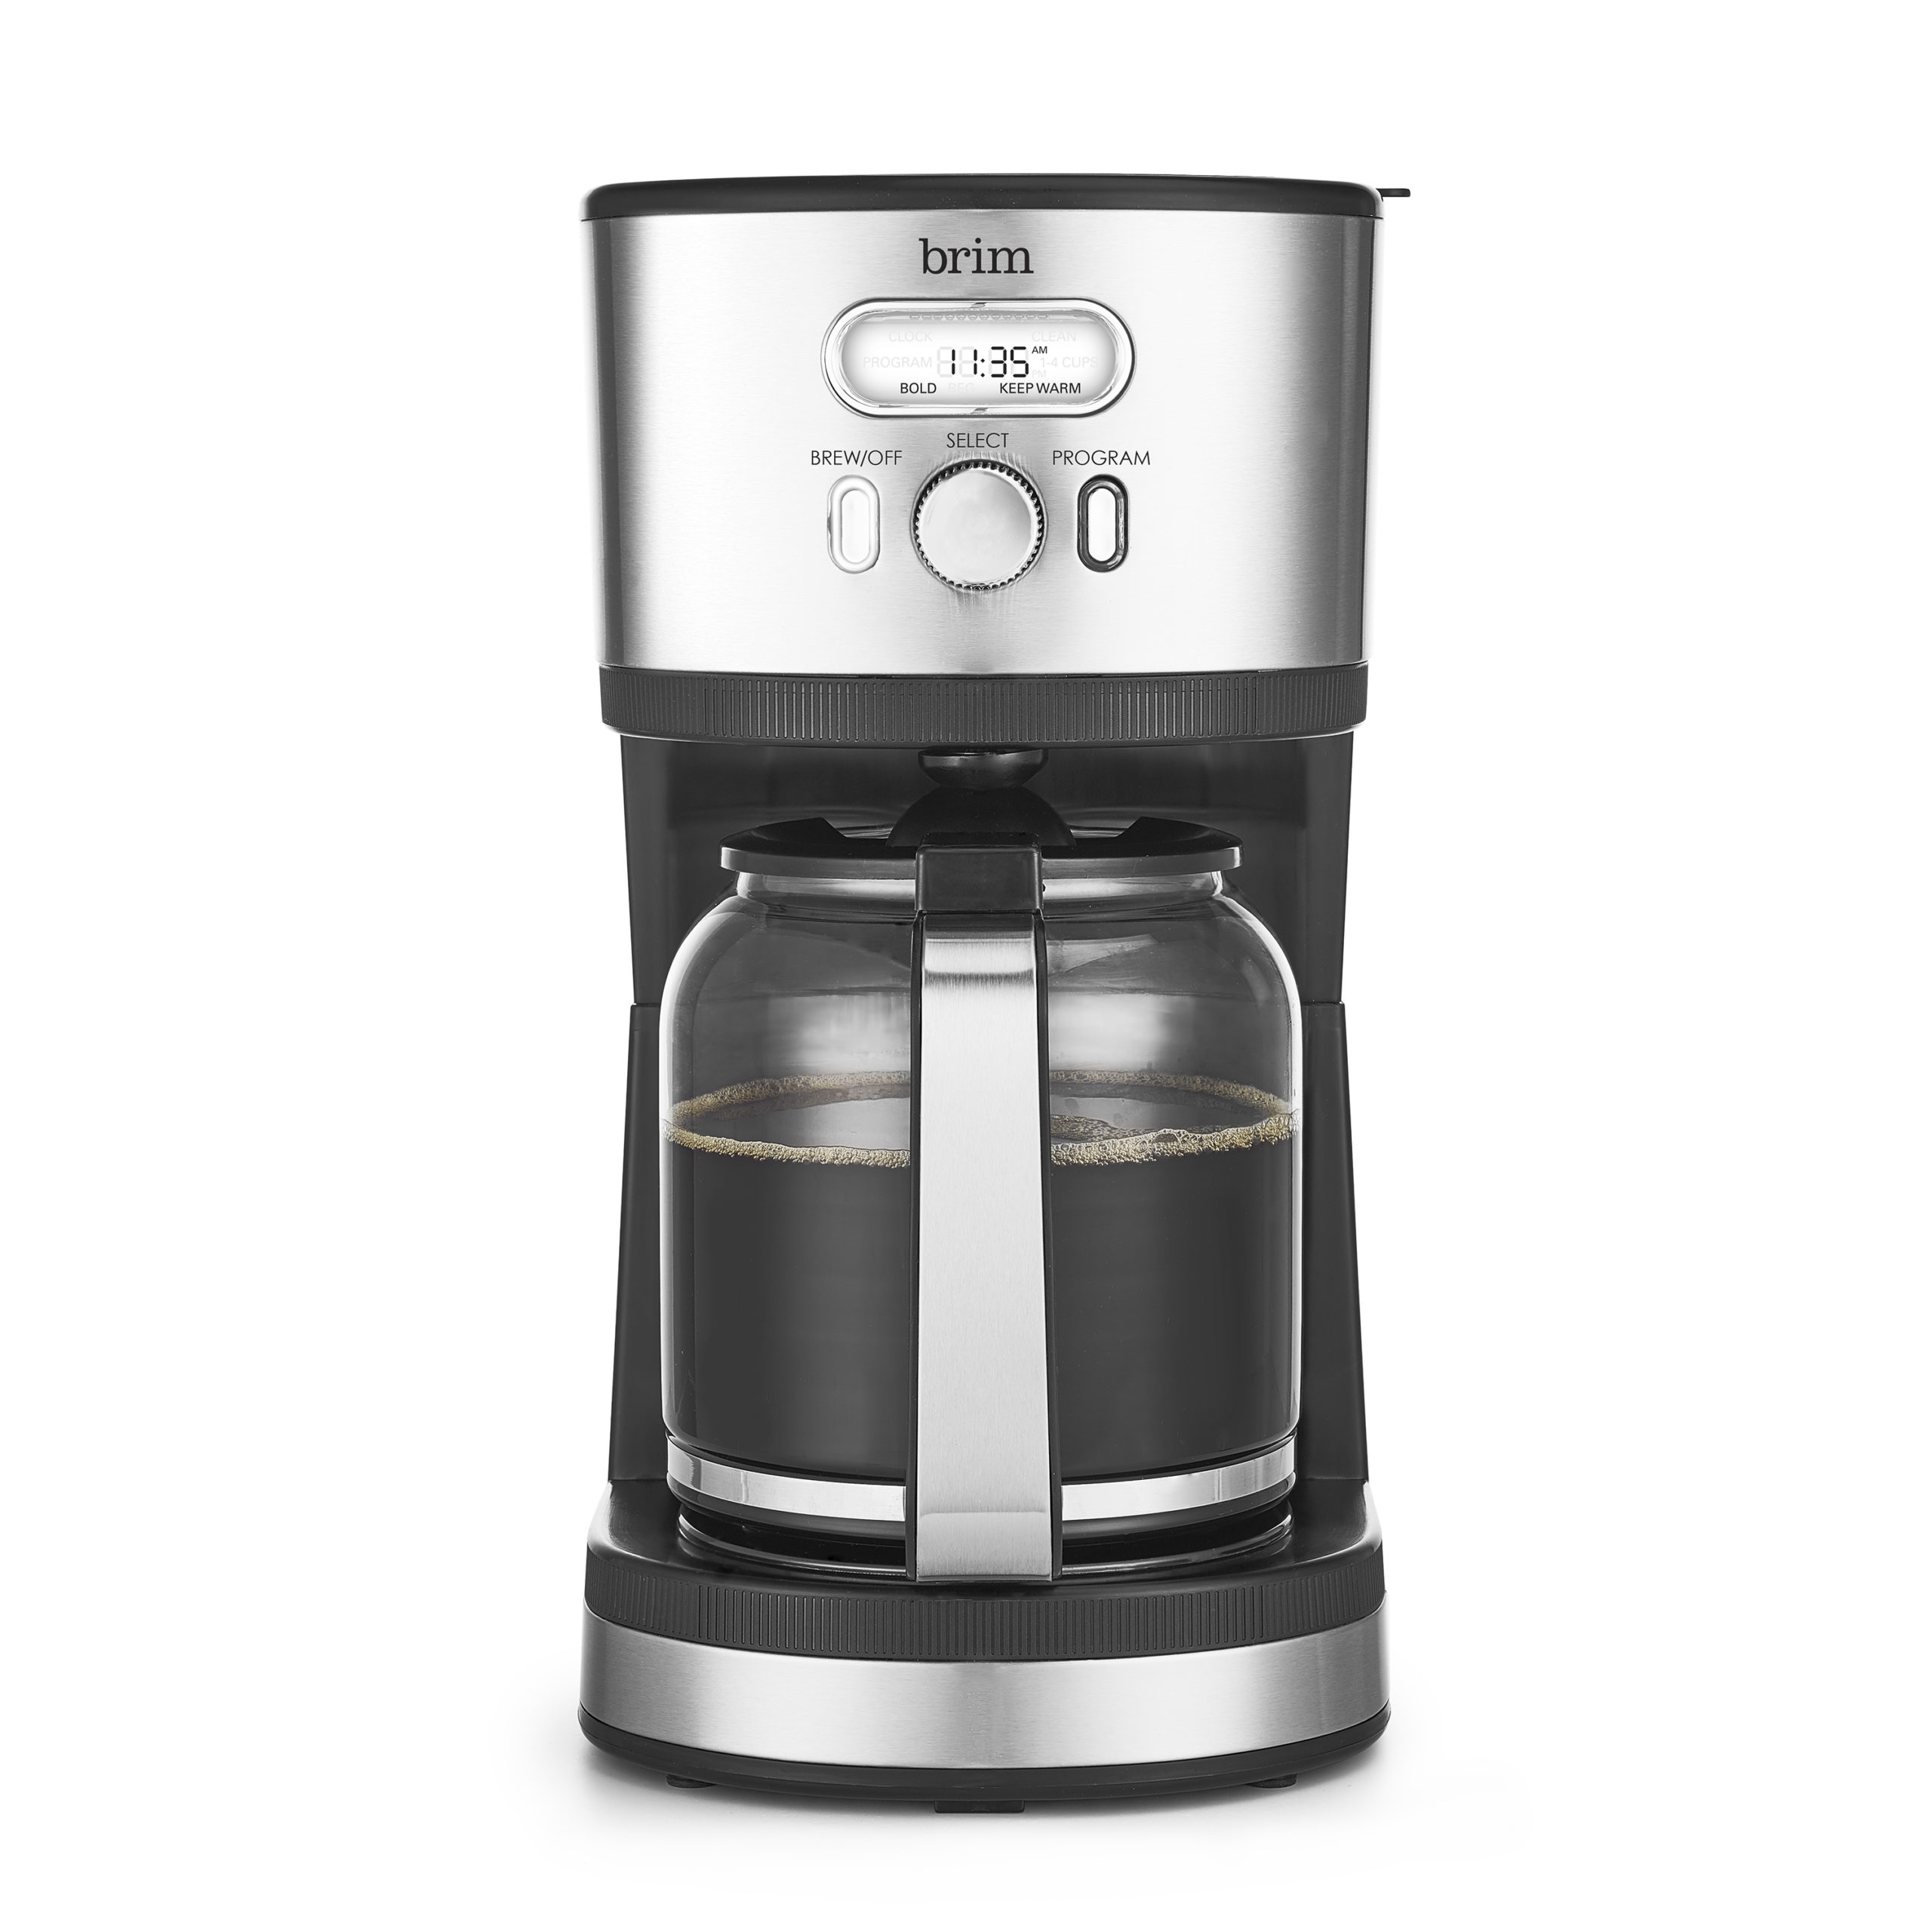 14 Cup Programmable Coffee maker, Stainless Steel